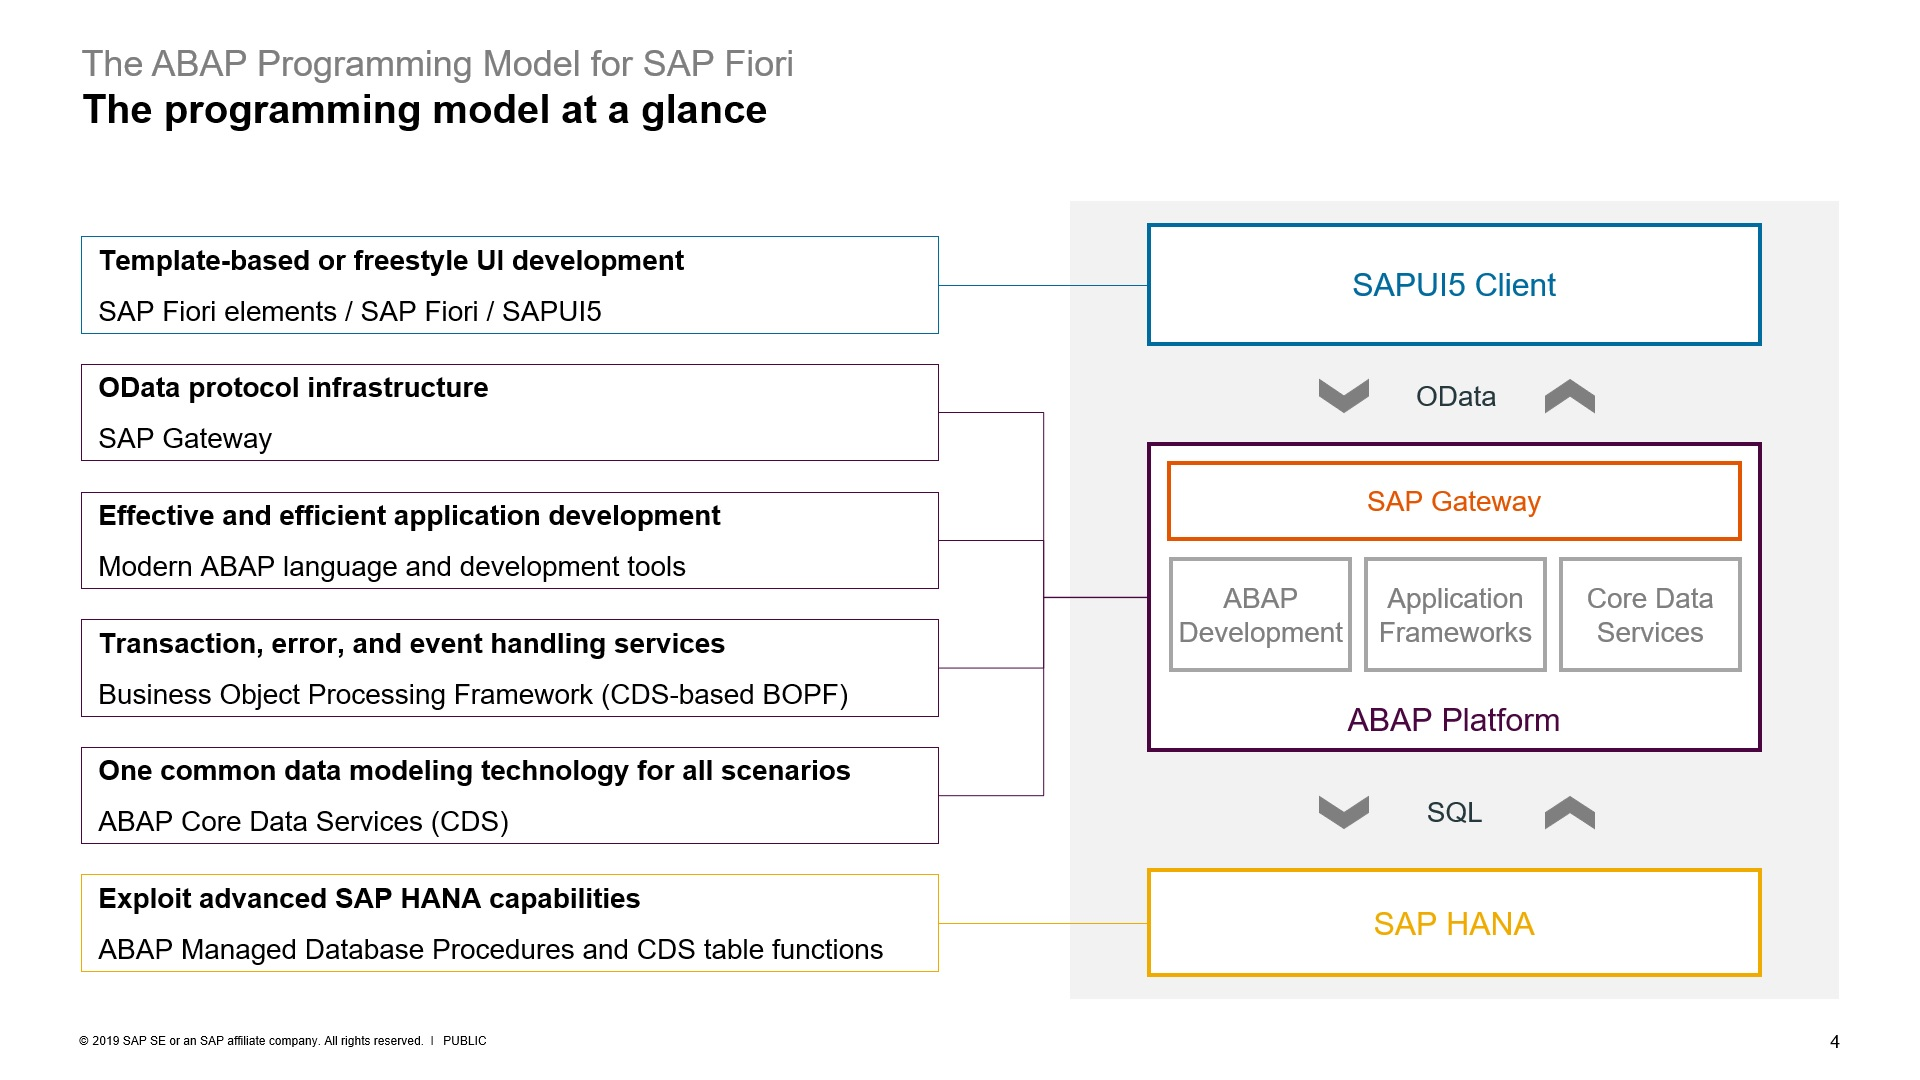 ABAP%20Programming%20model%20for%20SAP%20FIORI